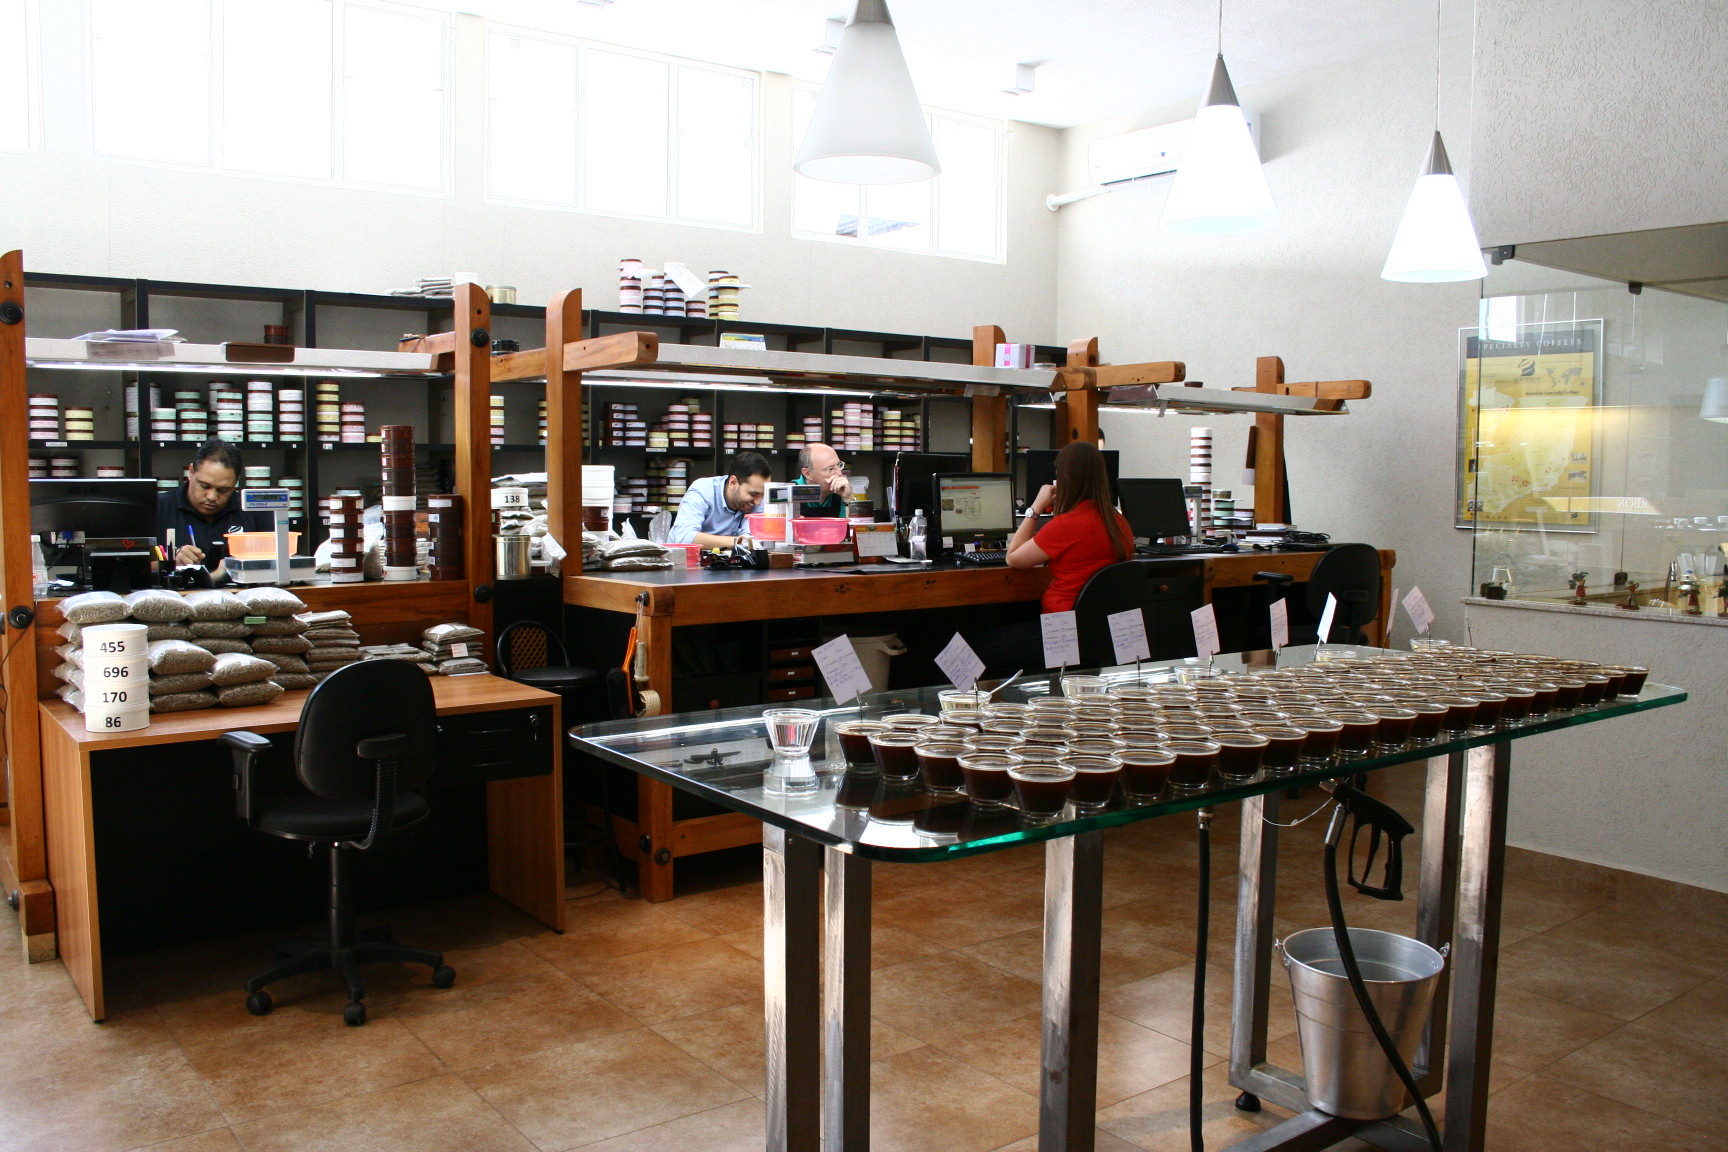 Brazil has landed 2 – Square Mile Coffee